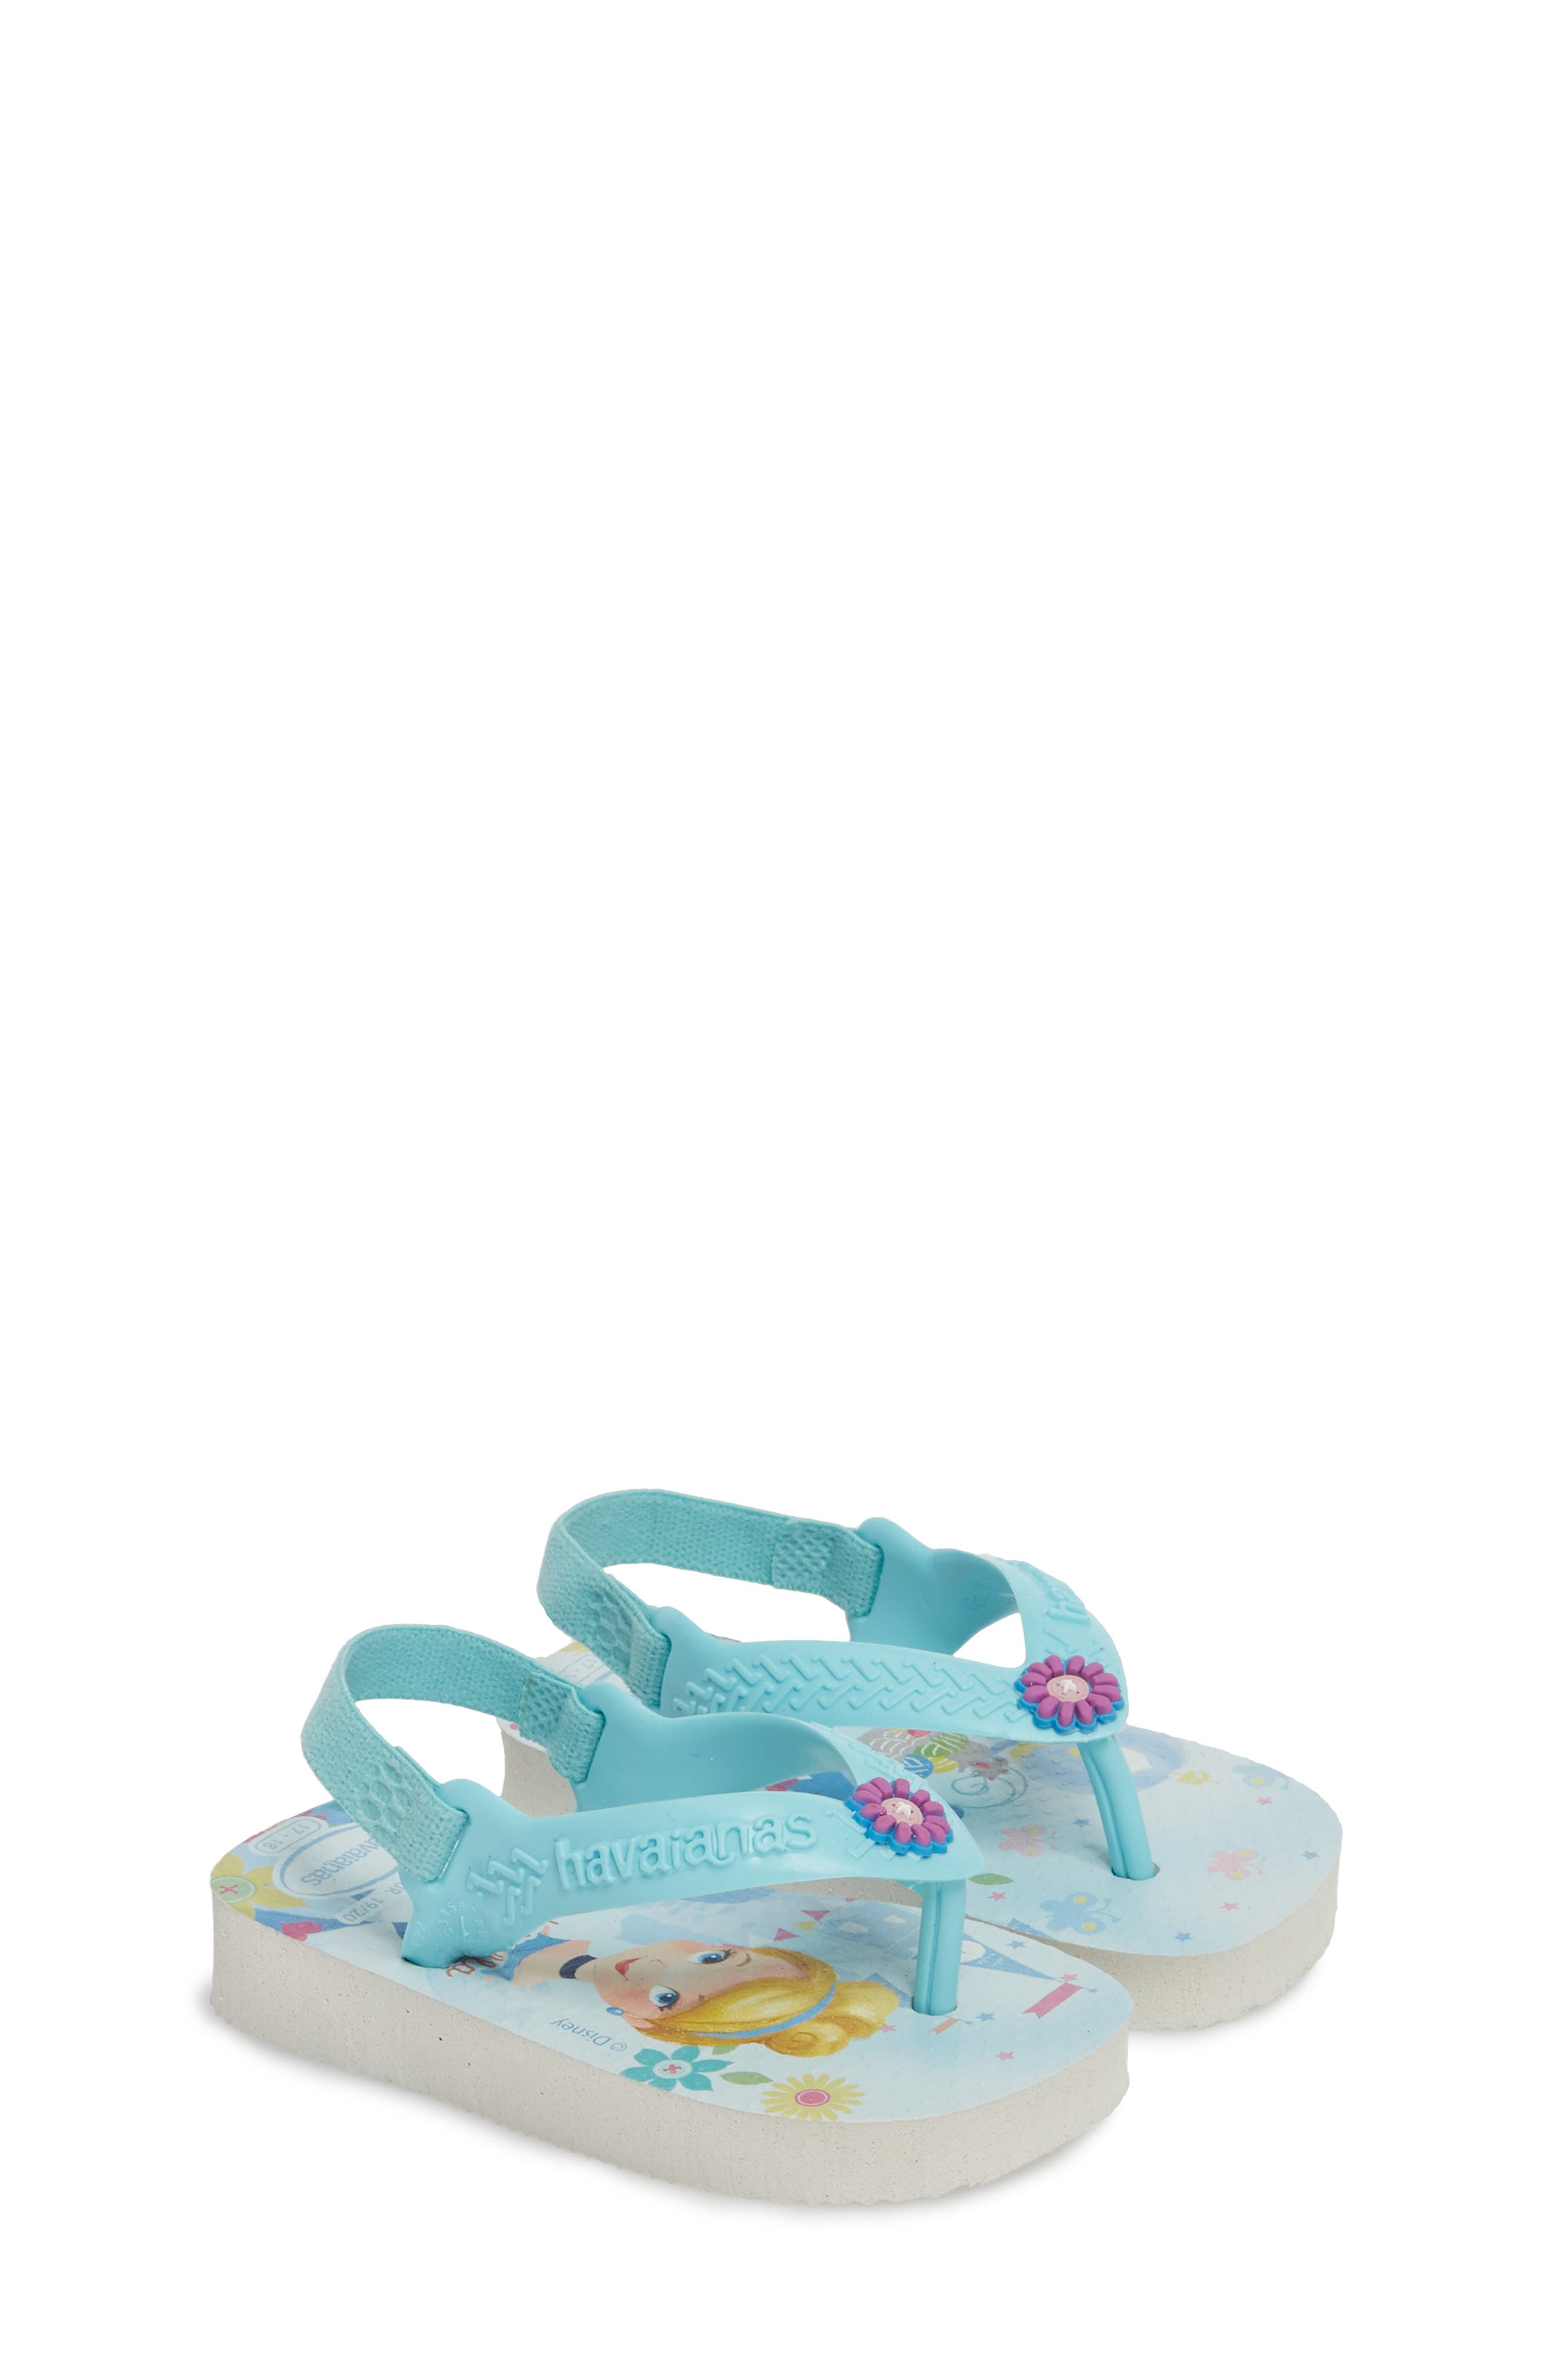 Baby Disney<sup>®</sup> Princess Flip Flop,                             Alternate thumbnail 3, color,                             White/ Ice Blue